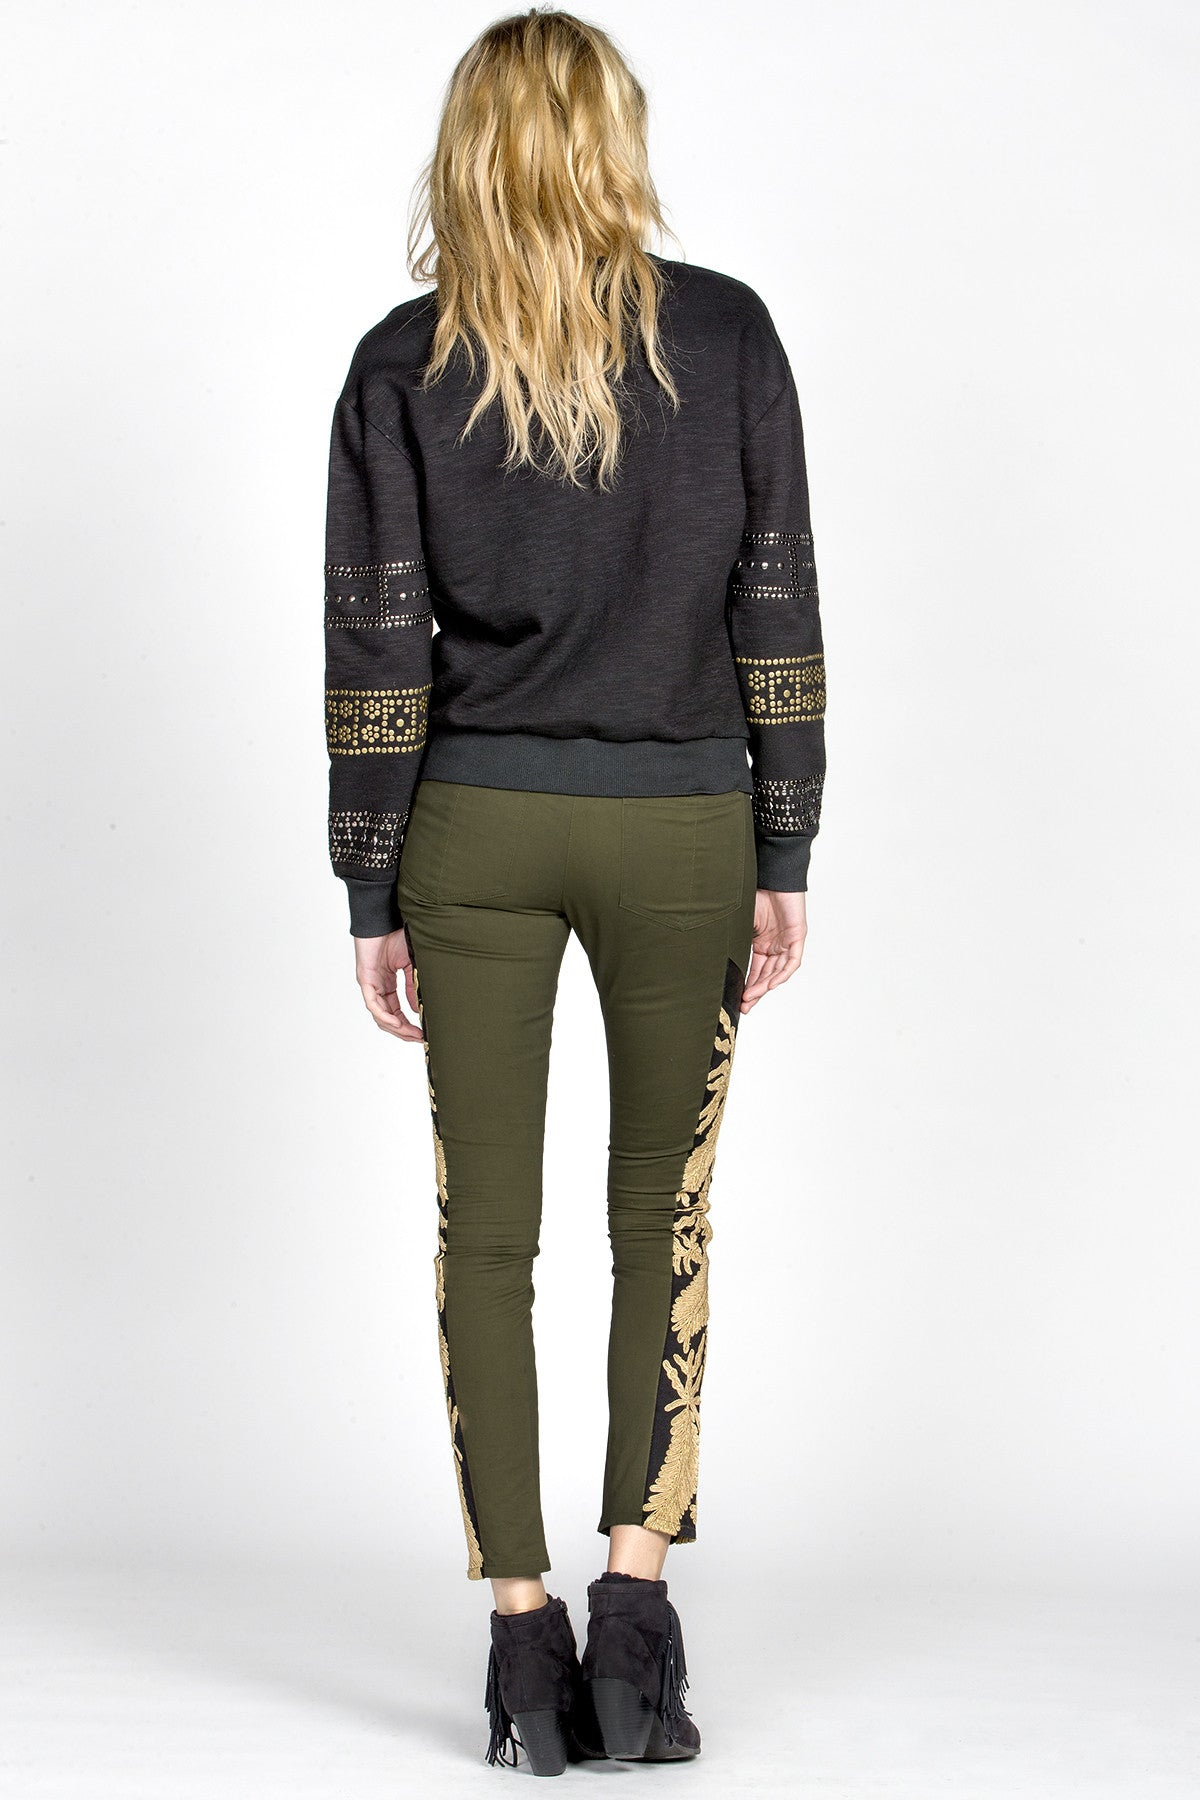 MM Vintage Strike Gold Embroidered Pants-6